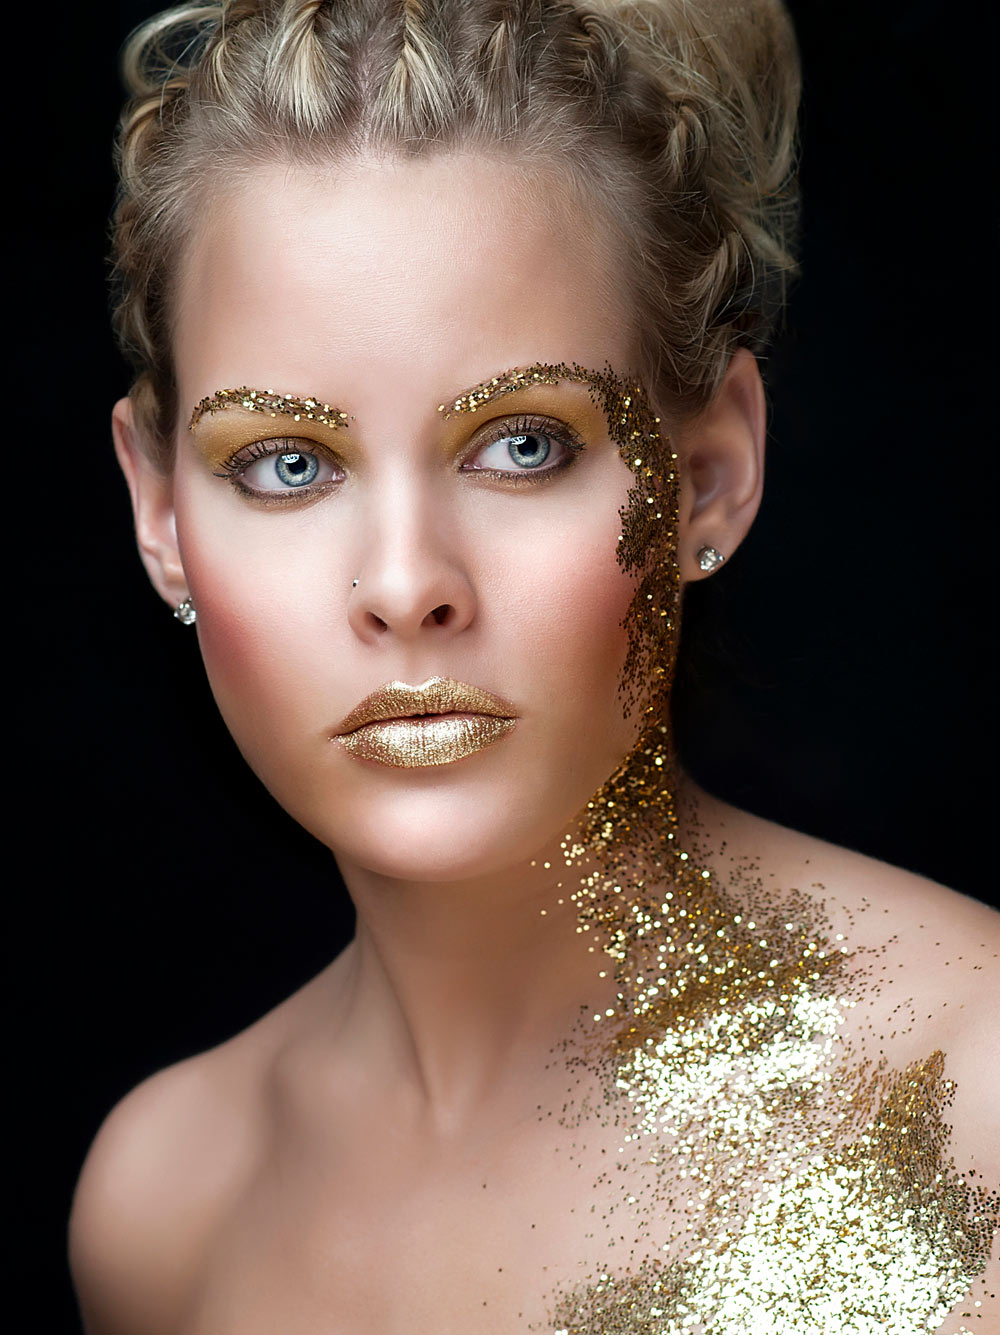 Makeup retouching for model and highend face editing